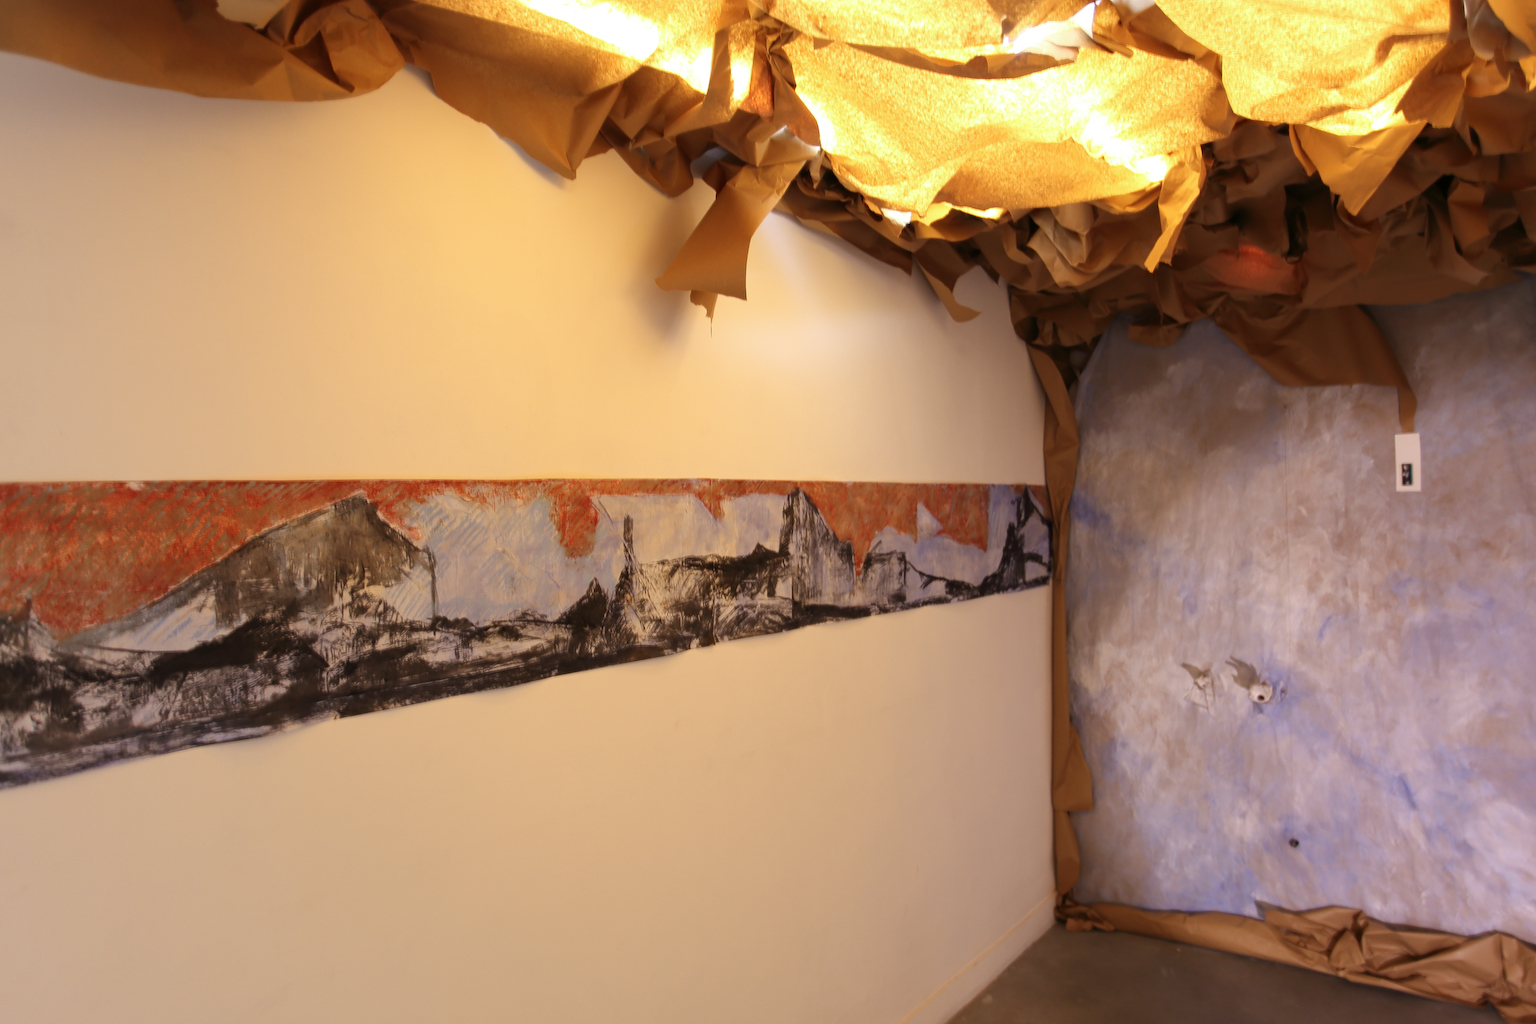 Installation de Annick Picchio Exposition IMMERSION au CACL - mai 2015